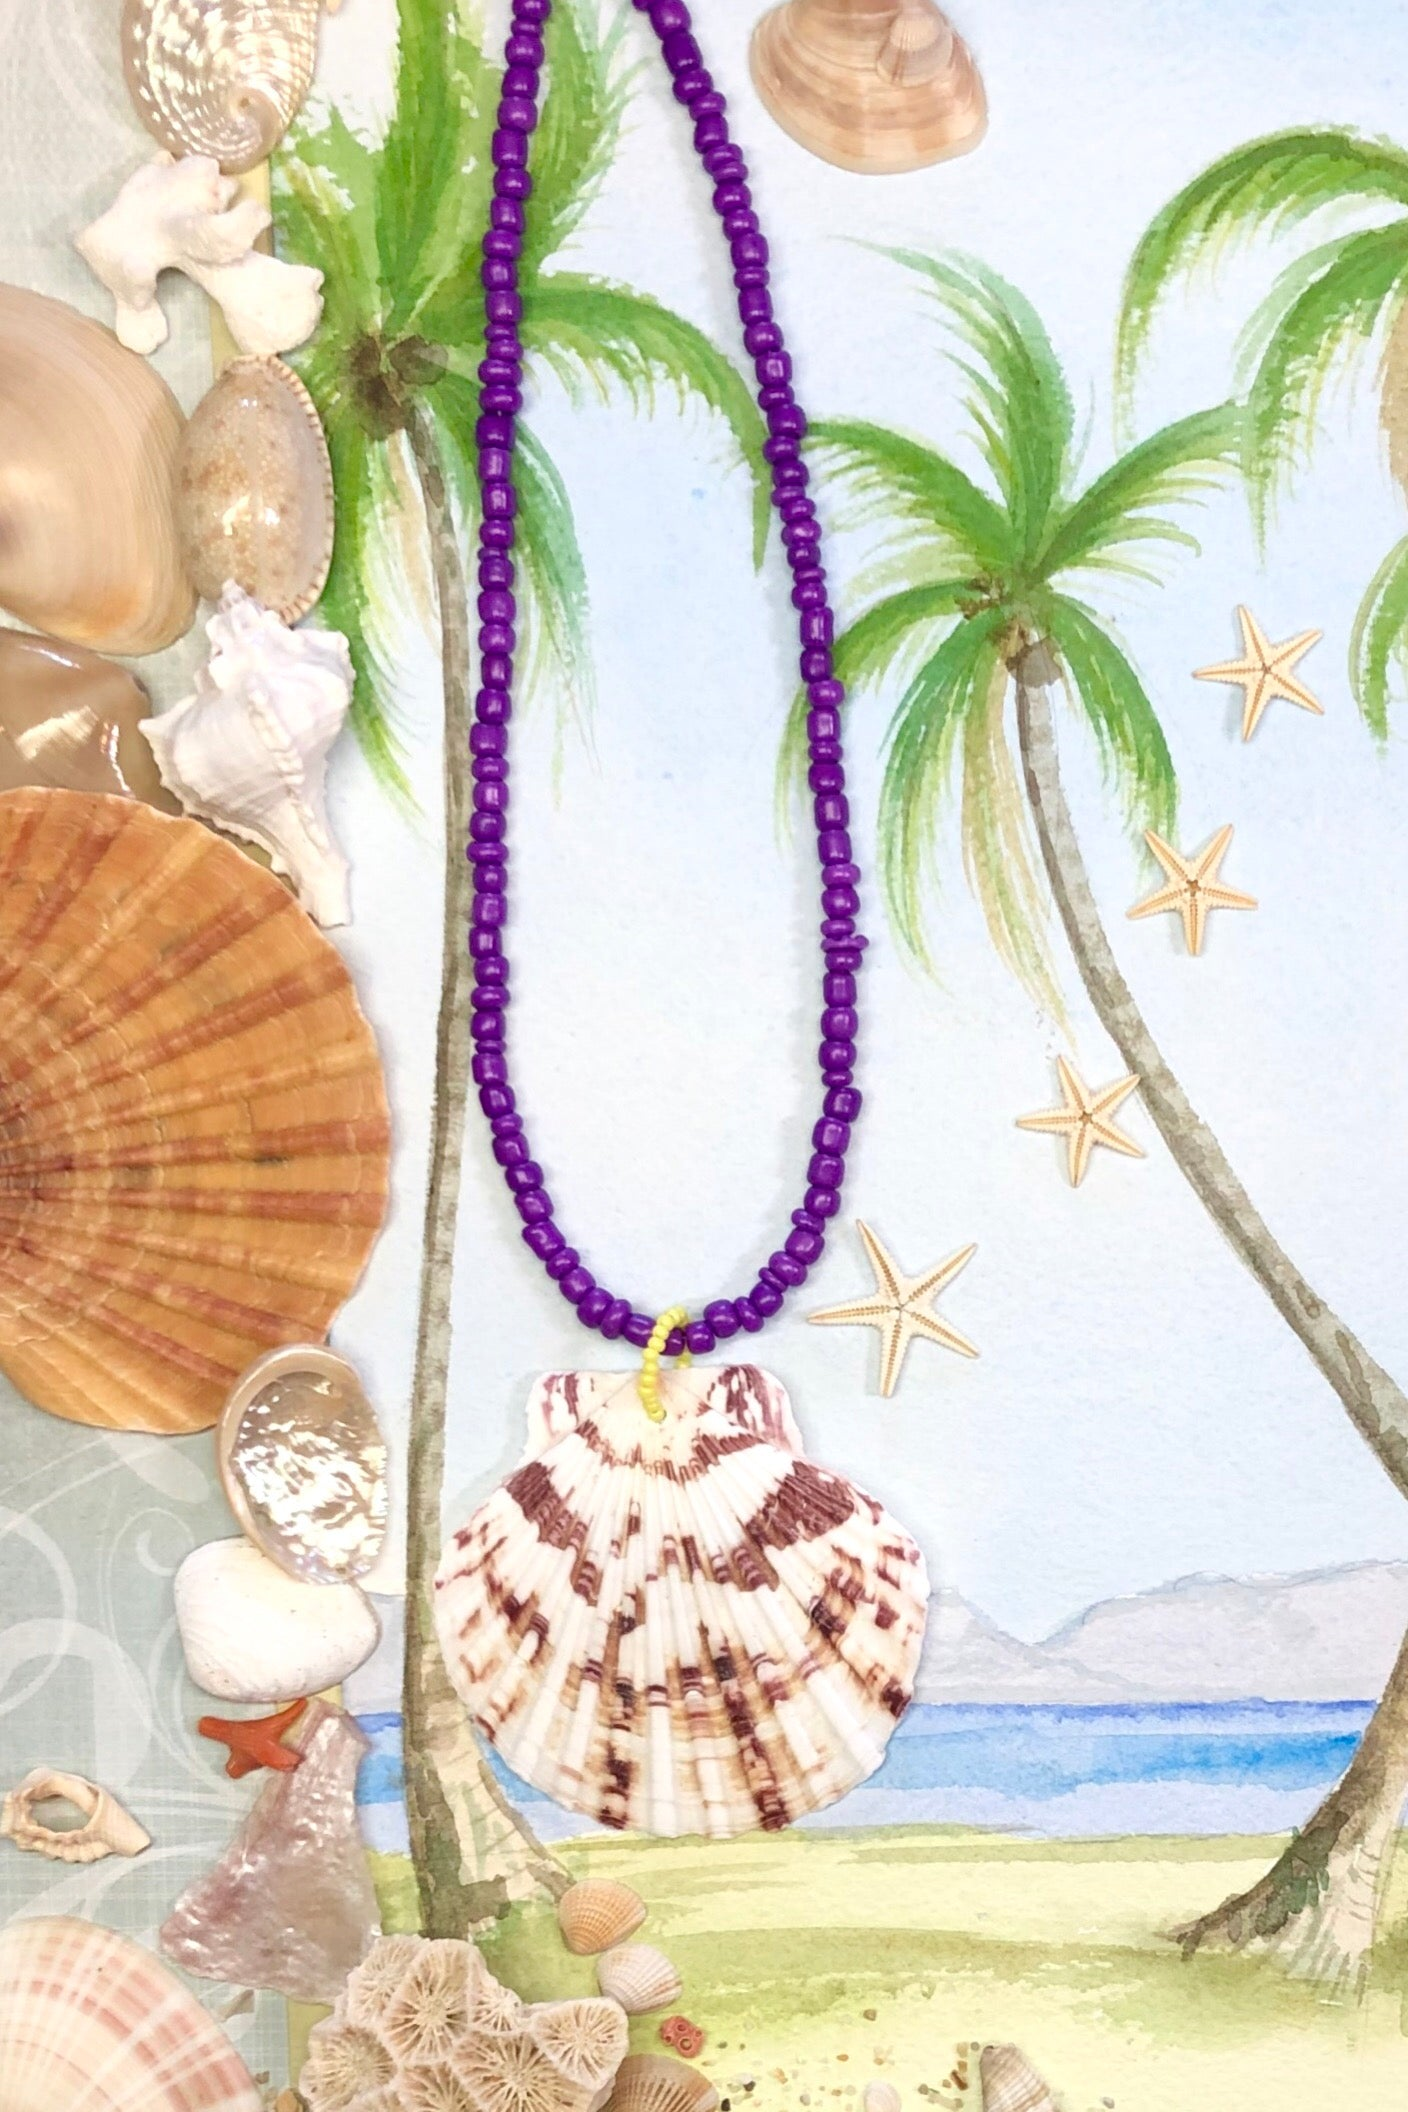 Shell necklace on bright beads